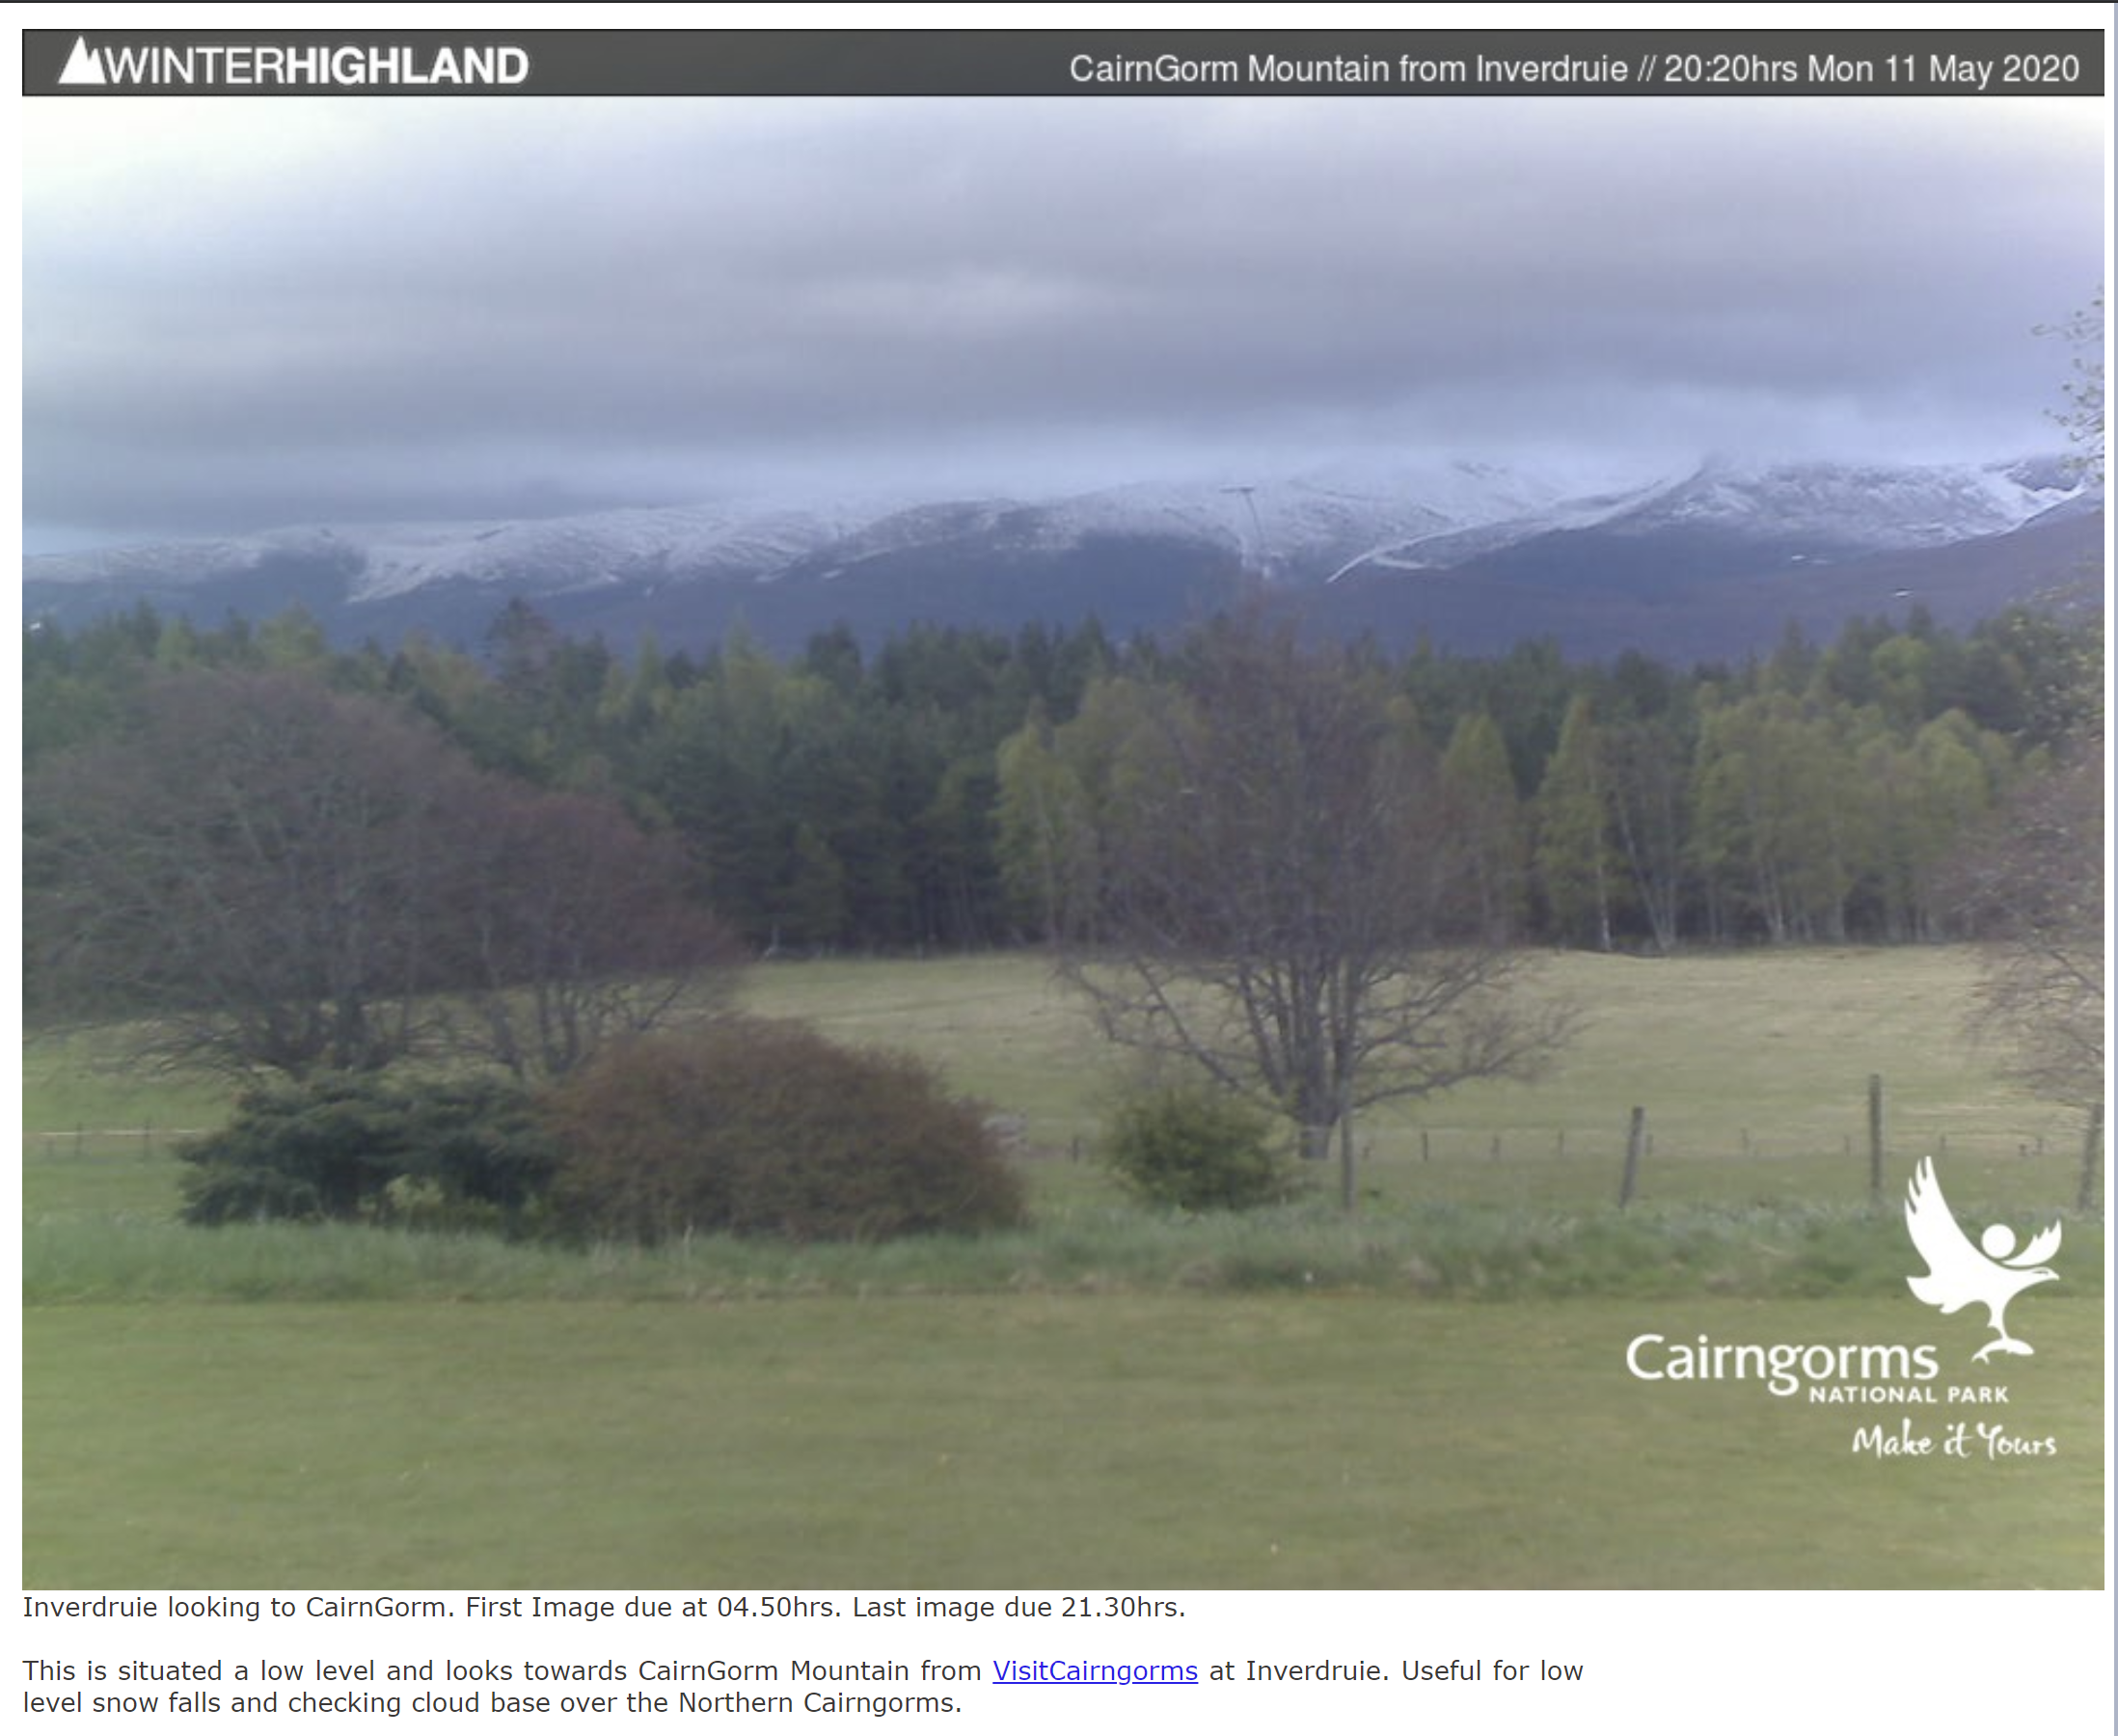 May snow in the northern Cairngorms 11th May 2020, from Winterhighland/Cairngorms National Park.